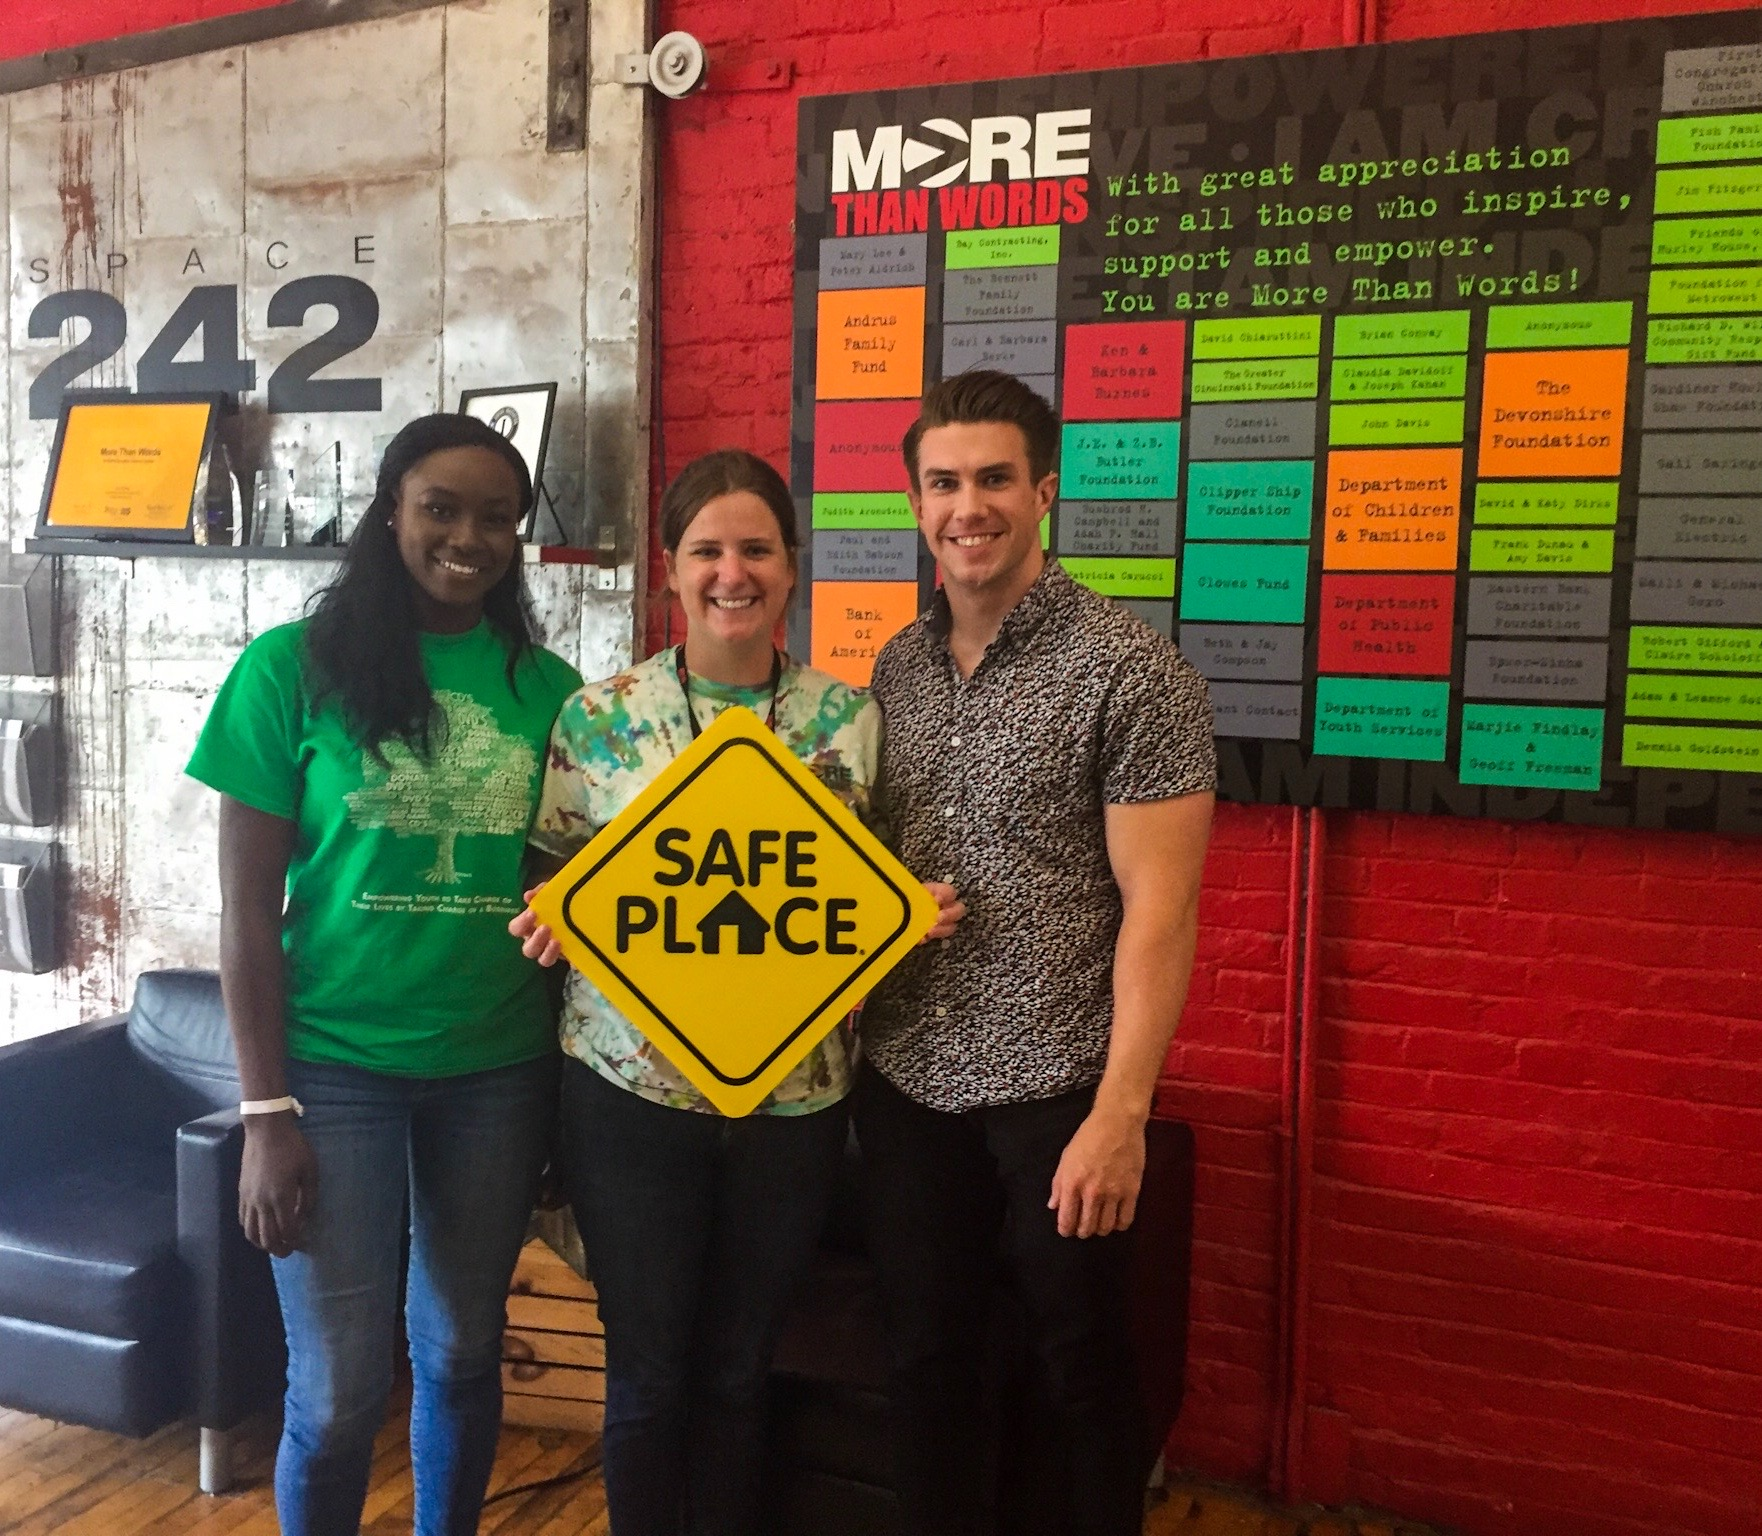 Safe Place signage indicates that both More Than Words locations (Boston and Waltham) are a key resource for any underage youth in need.